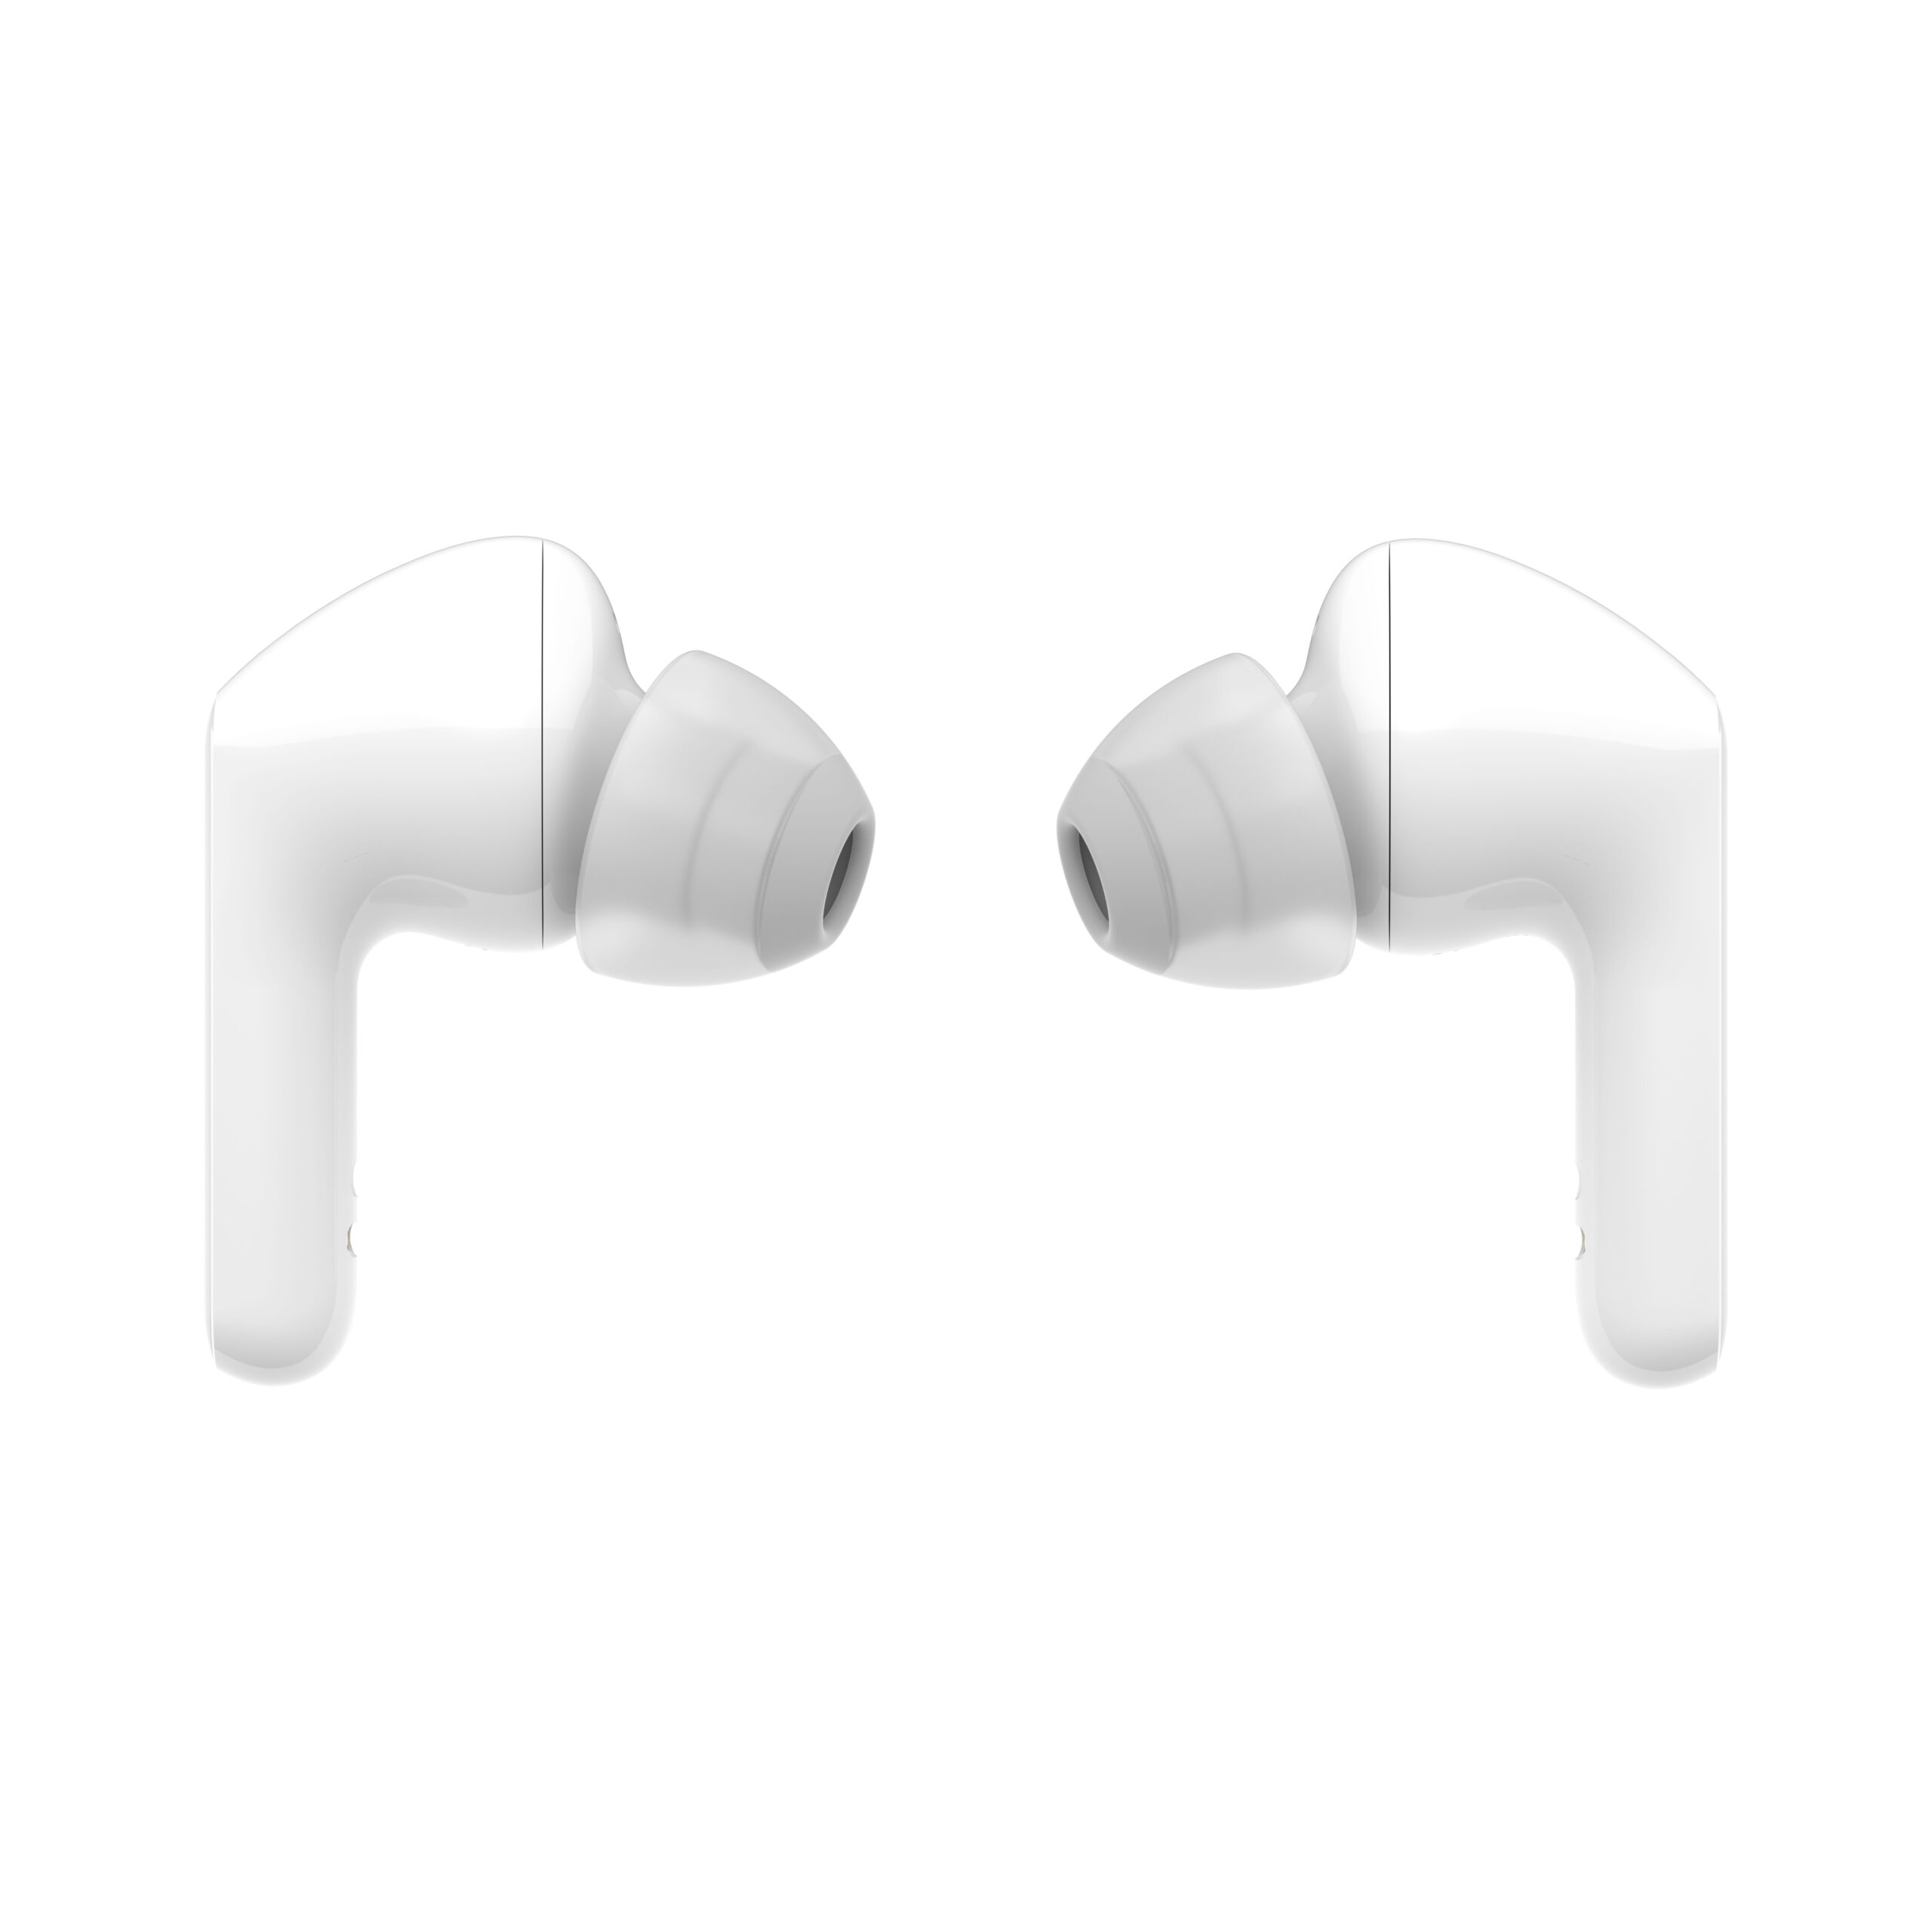 A pair of LG TONE Free in glossy modern white facing each other